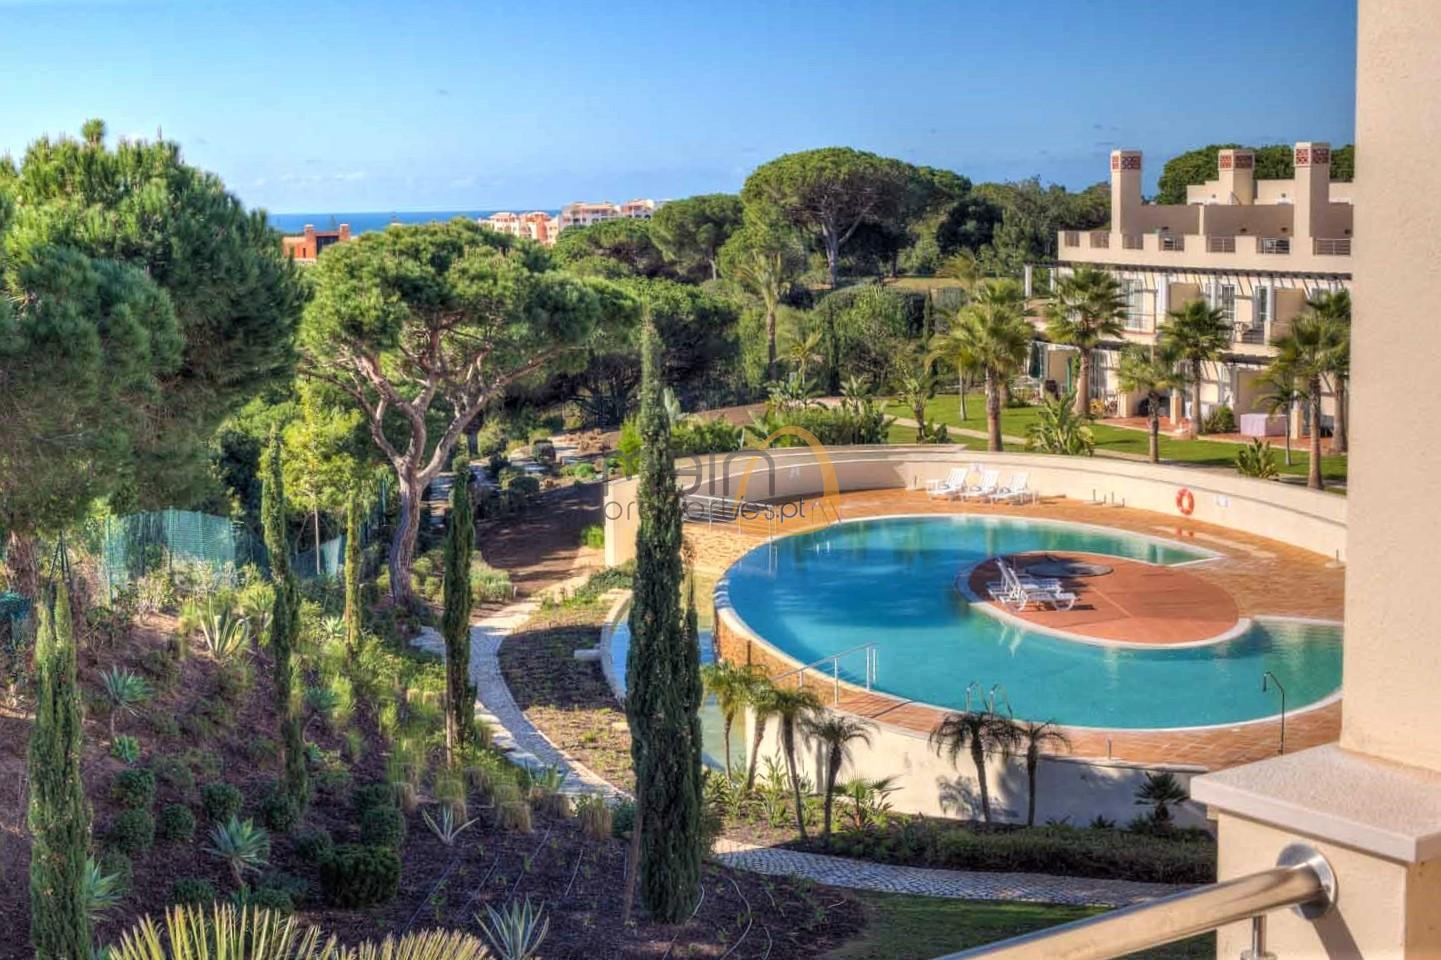 Luxury villa with 3+1 bedrooms in a gated community near Vilamoura.